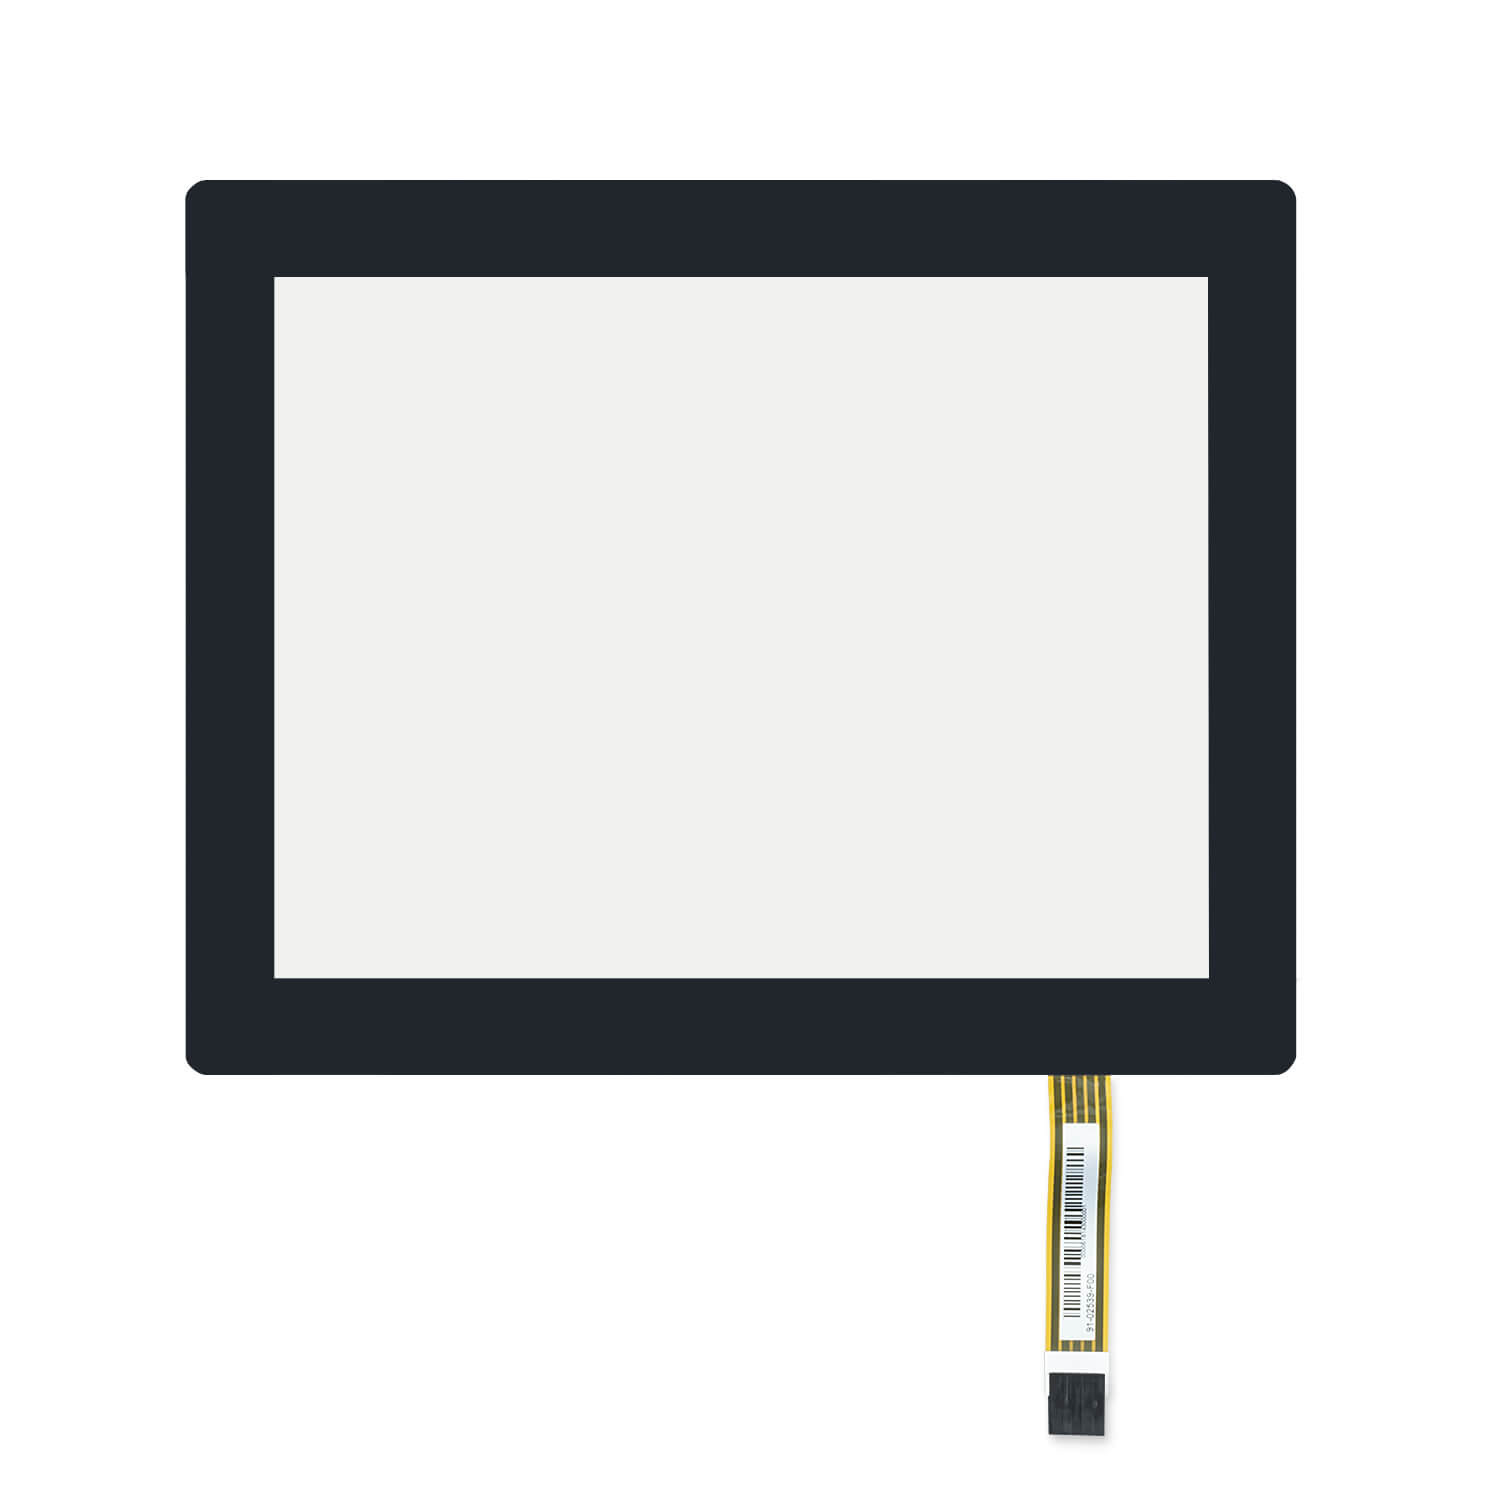 RTP10.4-5W-AMT-2539-F00 - resistive touch screen (10.4-inch, 16:9 aspect ratio, 1.1 mm glass)